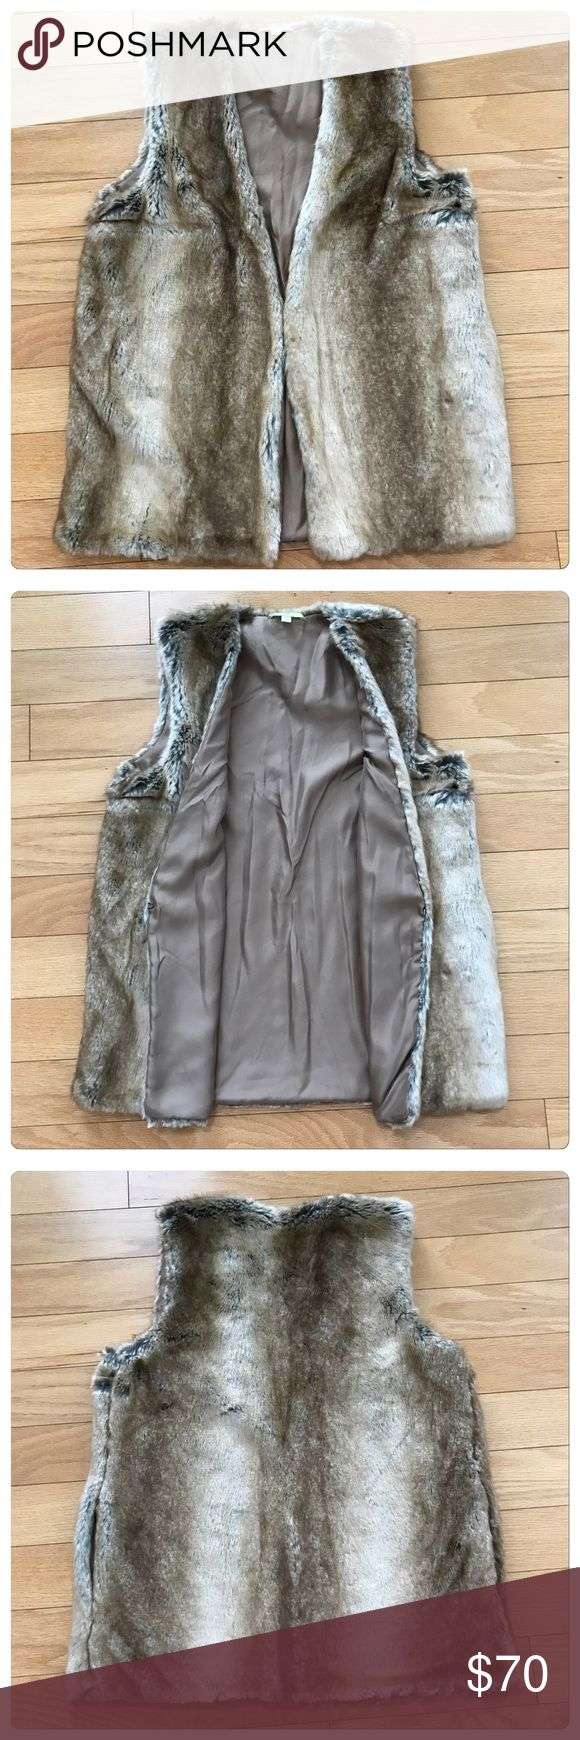 NWT, Stunning Gianni Bini, Faux Fur Neutral Vest! NWT, Stunning Gianni Bini, Faux Fur Vest! Beautifully designed with neutral tones of brown, tan with a grey undertone. Fully lined with hidden side pockets! Hidden front optional hook & eye closure. Shell: 79% acrylic & 21% polyester. Lining 100% polyester. Size XS but can fit sizes XS-M. 🚫No Trades Gianni Bini Jackets & Coats Vests